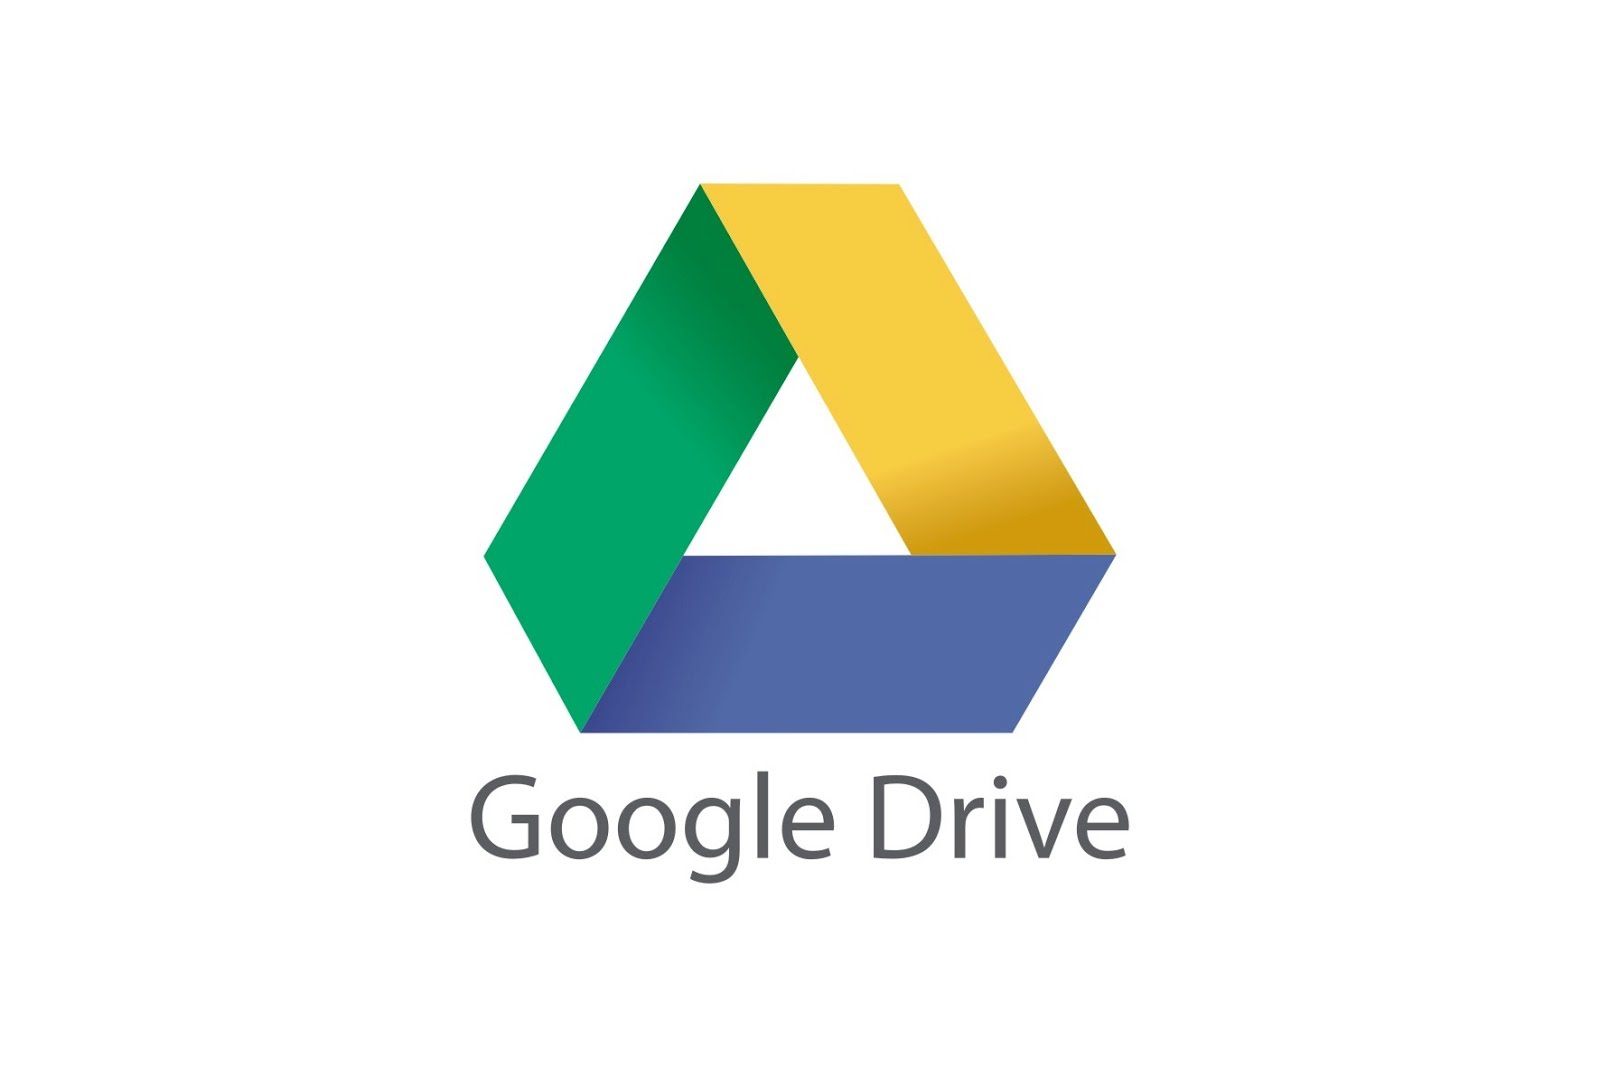 Download-YouTube-Videos-Pictures-and-Songs-Directly-to-Google-Drive.jpg